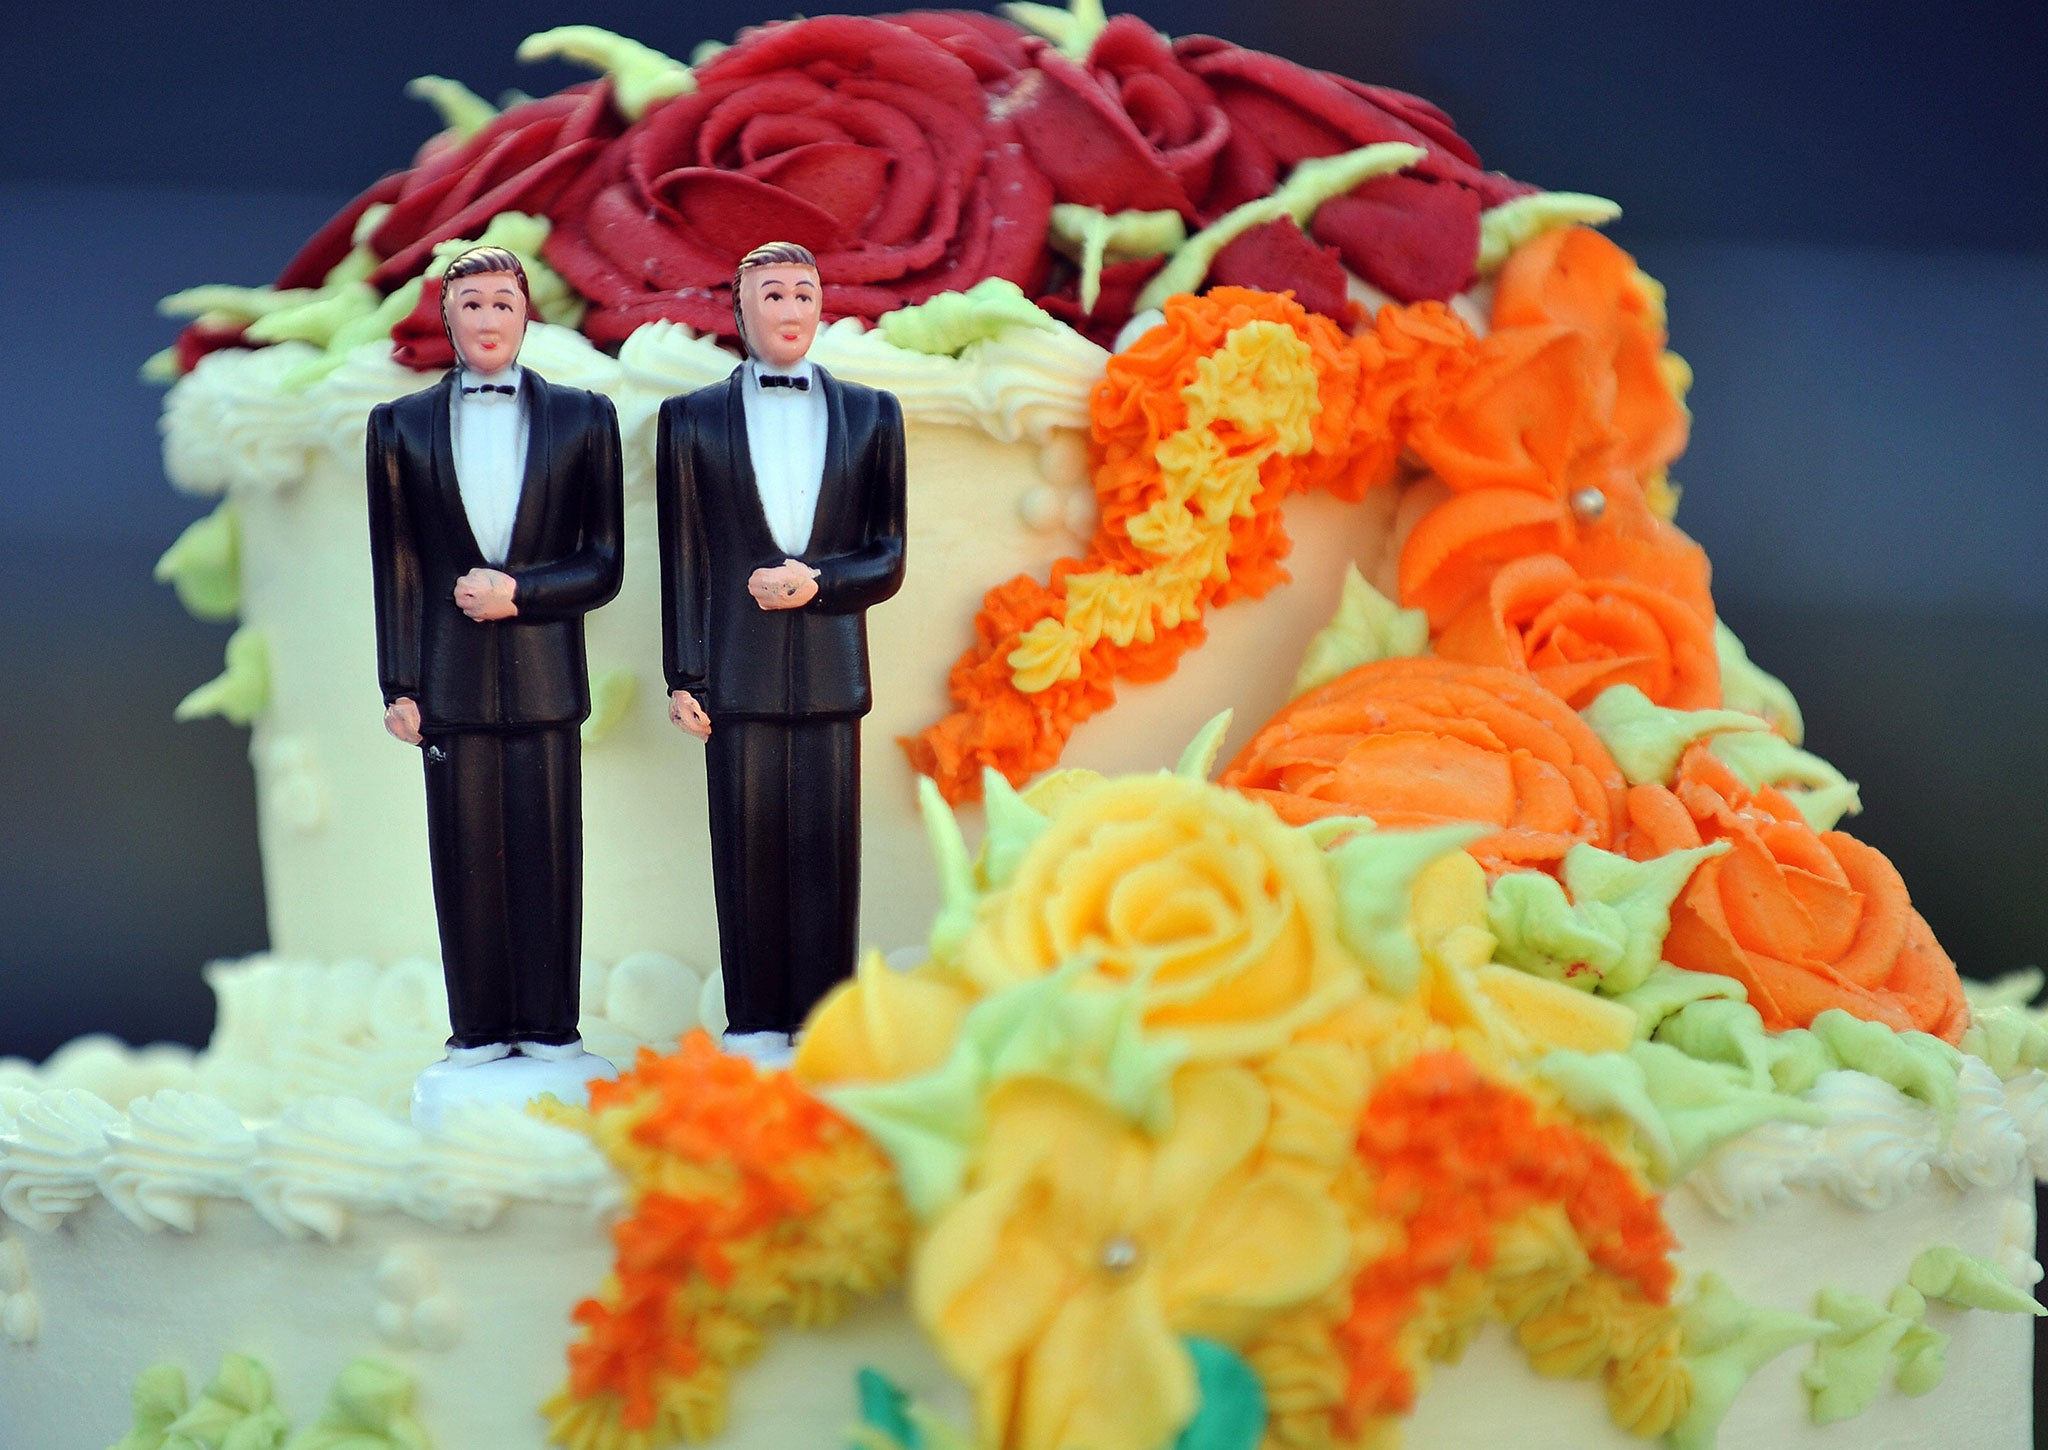 Cakegate Leaves A Funny Taste Is This Really The Way For